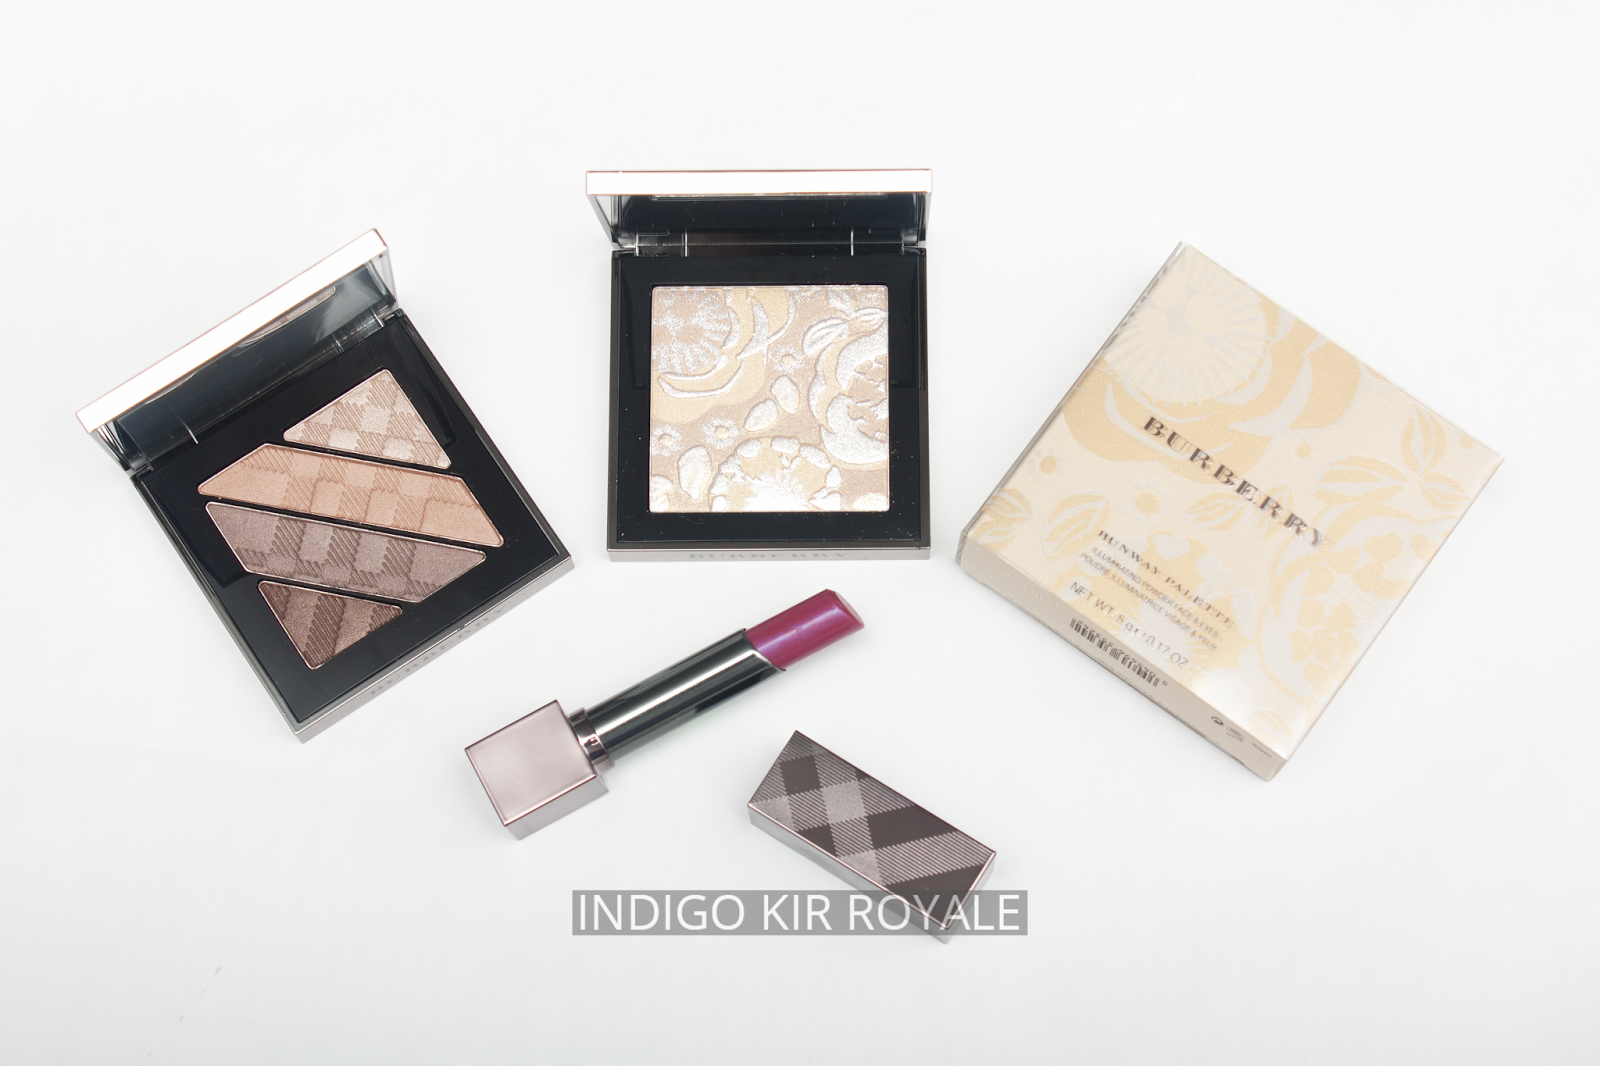 New In From Burberry Including The Limited Edition Autumn Winter Bobbi Brown Illuminating Cheek Palette Have Recently Released A Few Gorgeous Pieces For This Seasons Runway Collection Stunning Powder